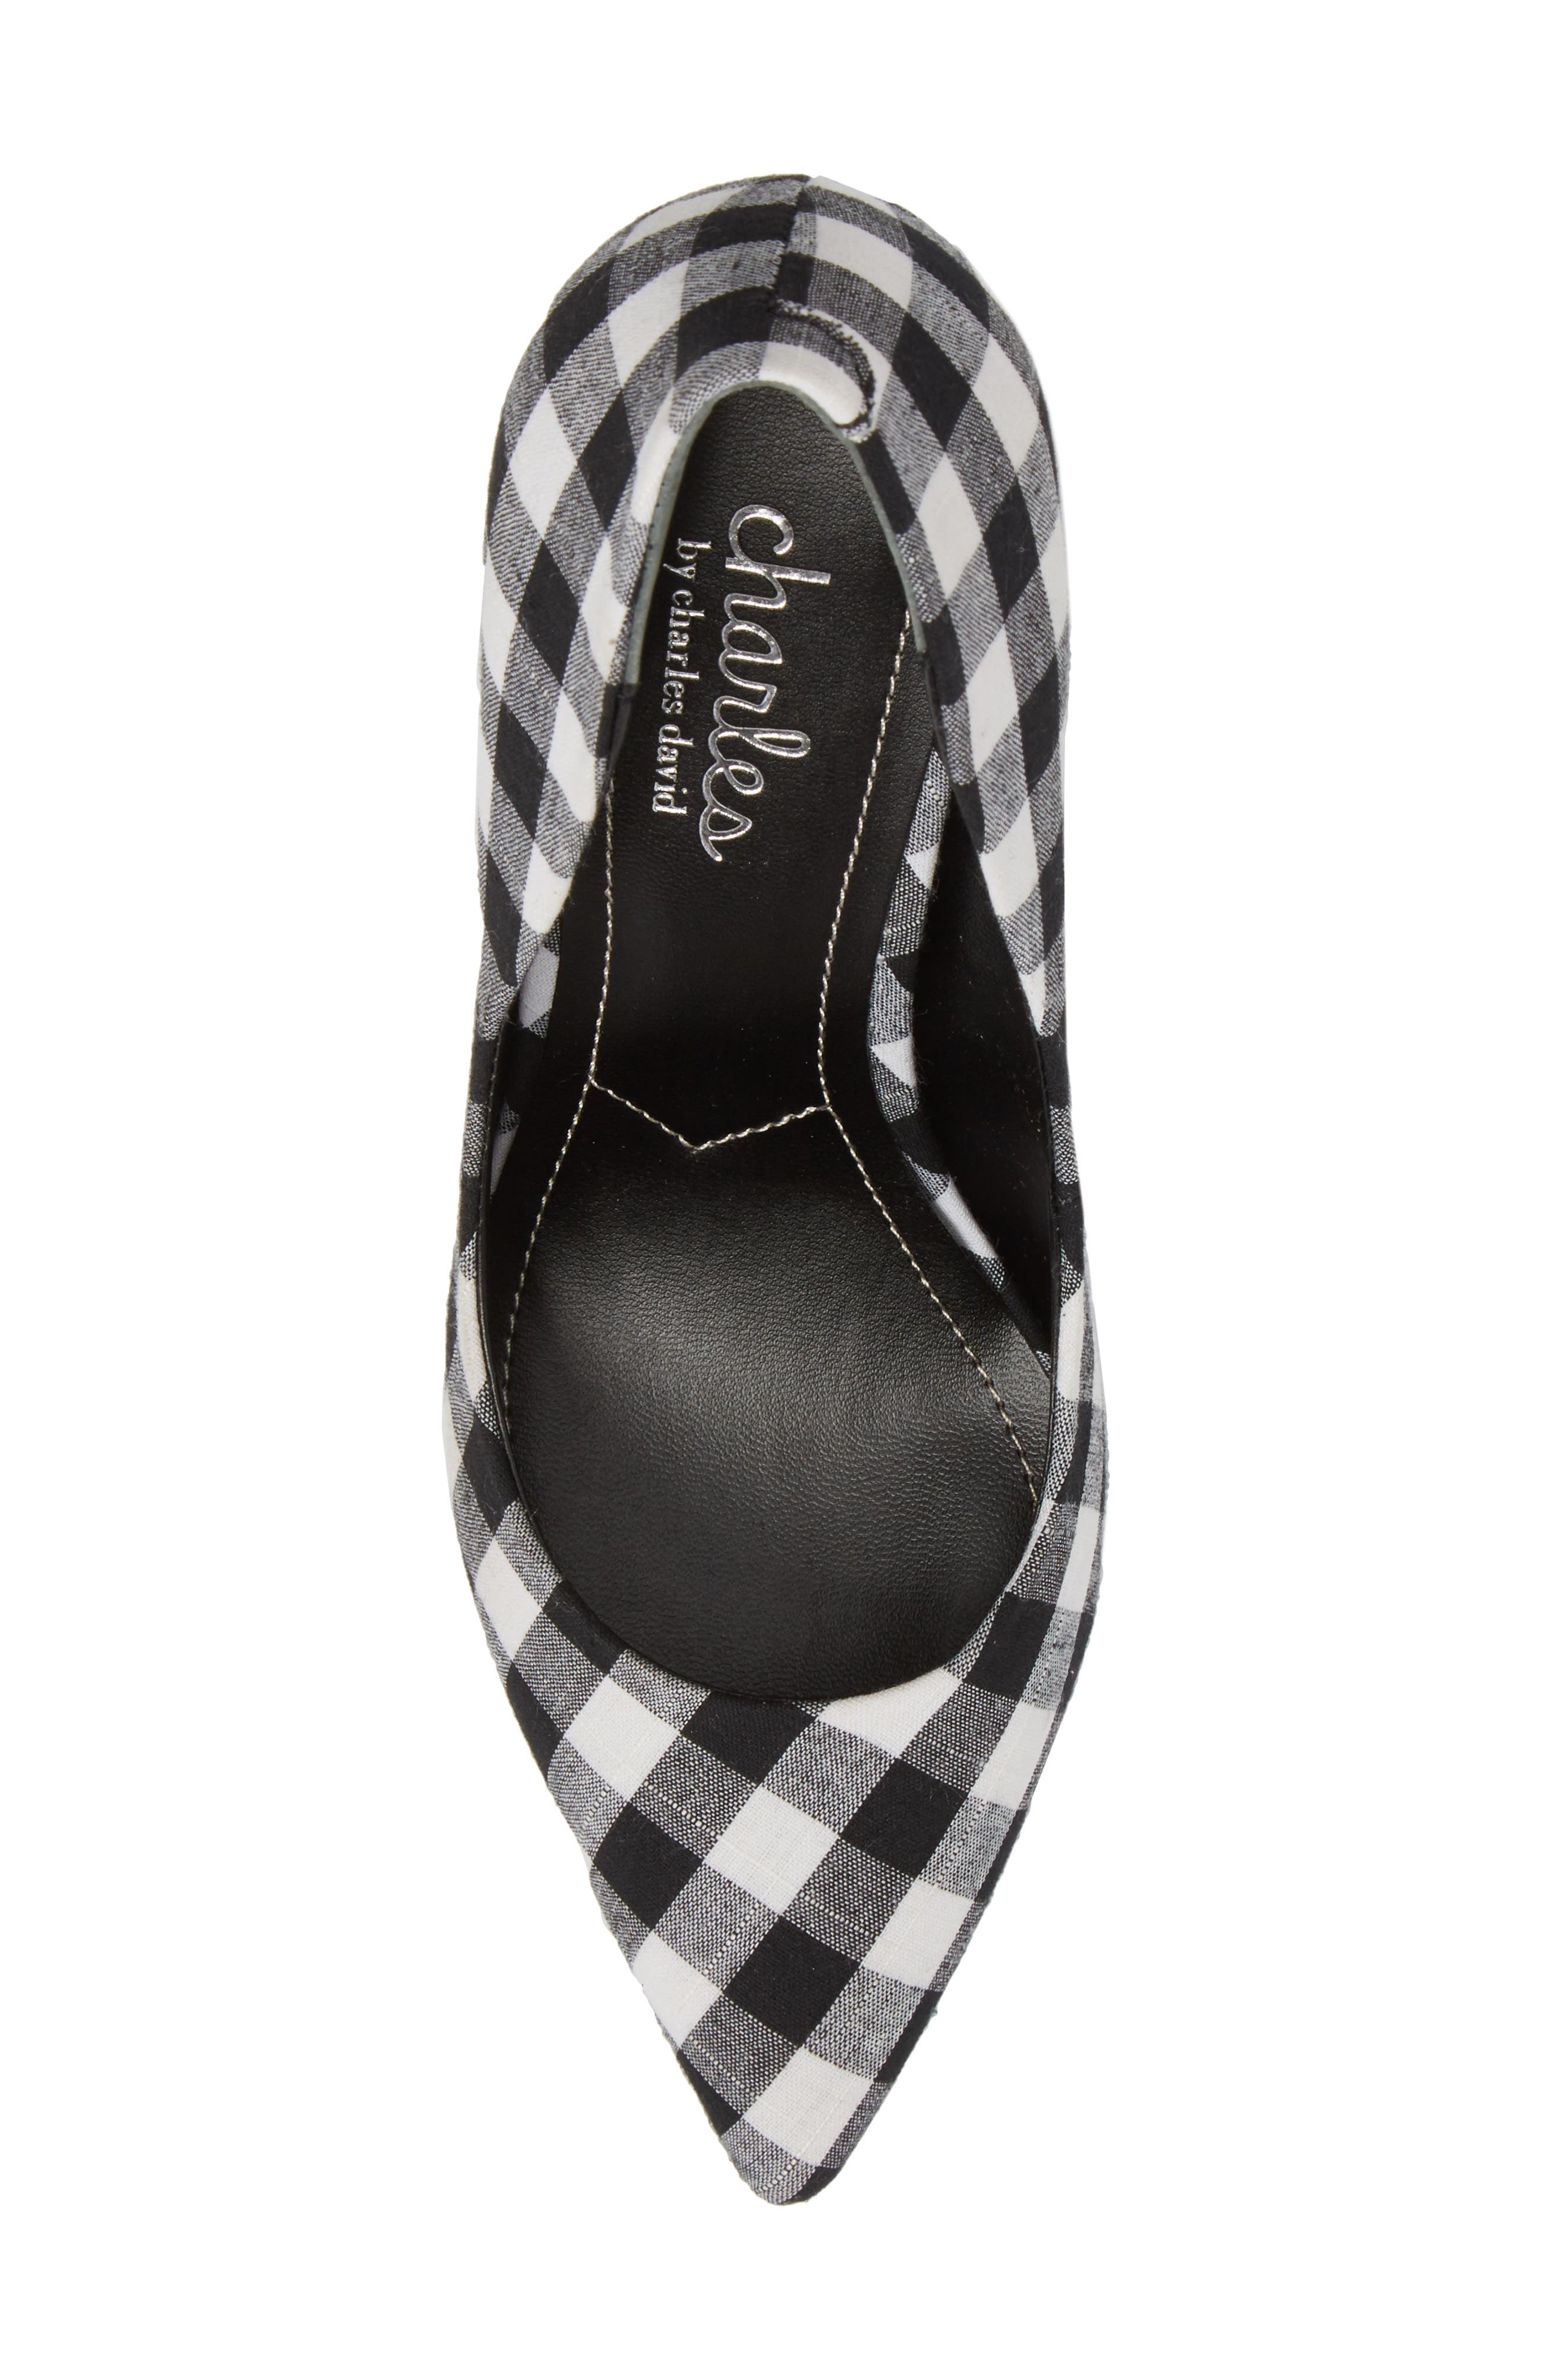 Maxx Pointy Toe Pump,                             Alternate thumbnail 5, color,                             BLACK/ WHITE GINGHAM FABRIC